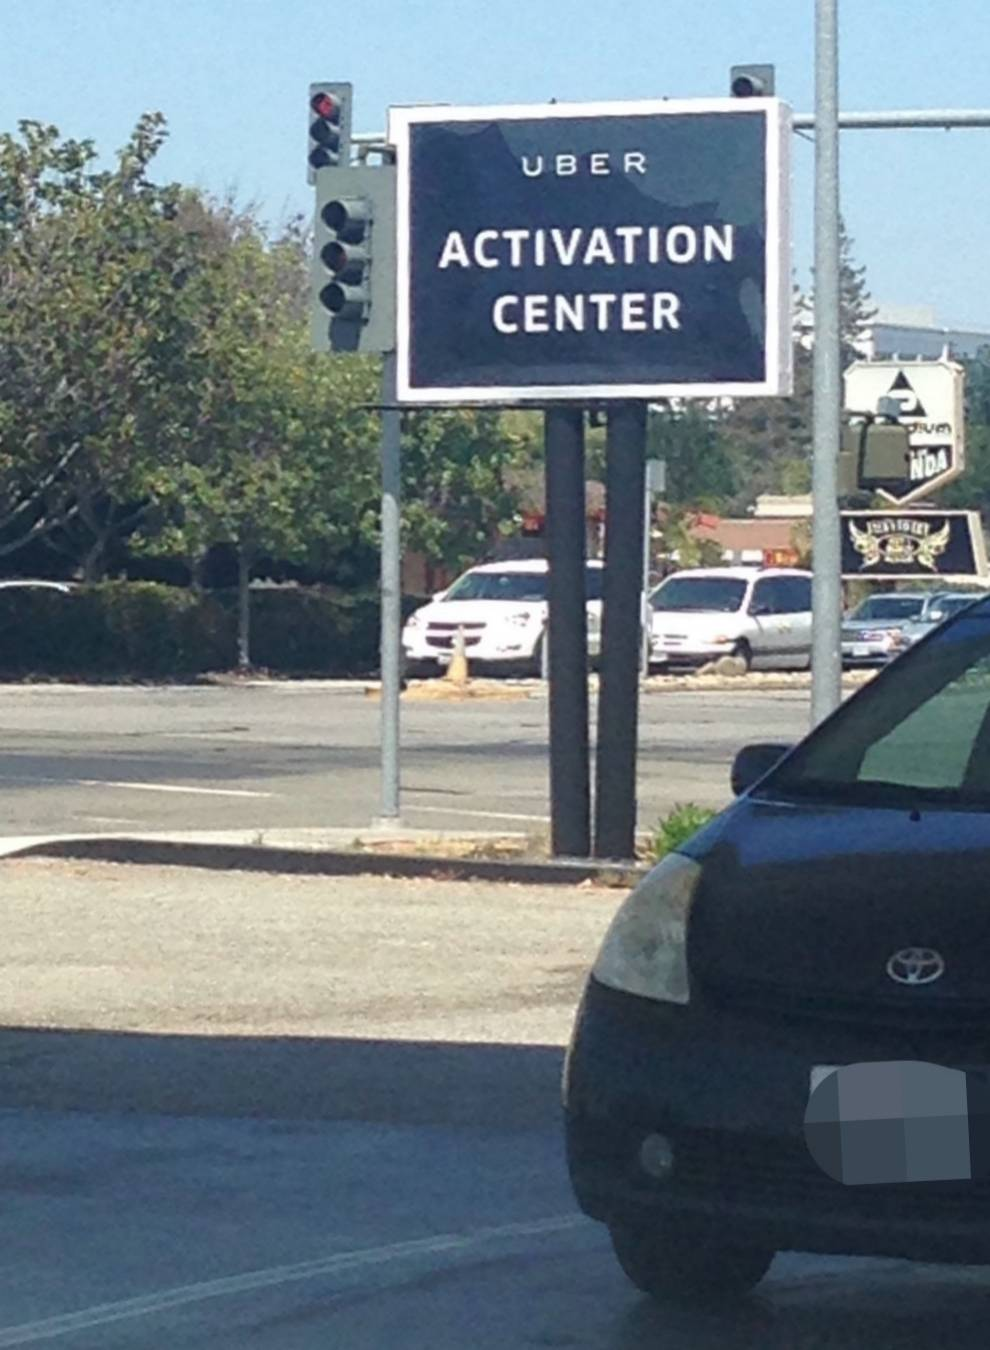 uber activation center